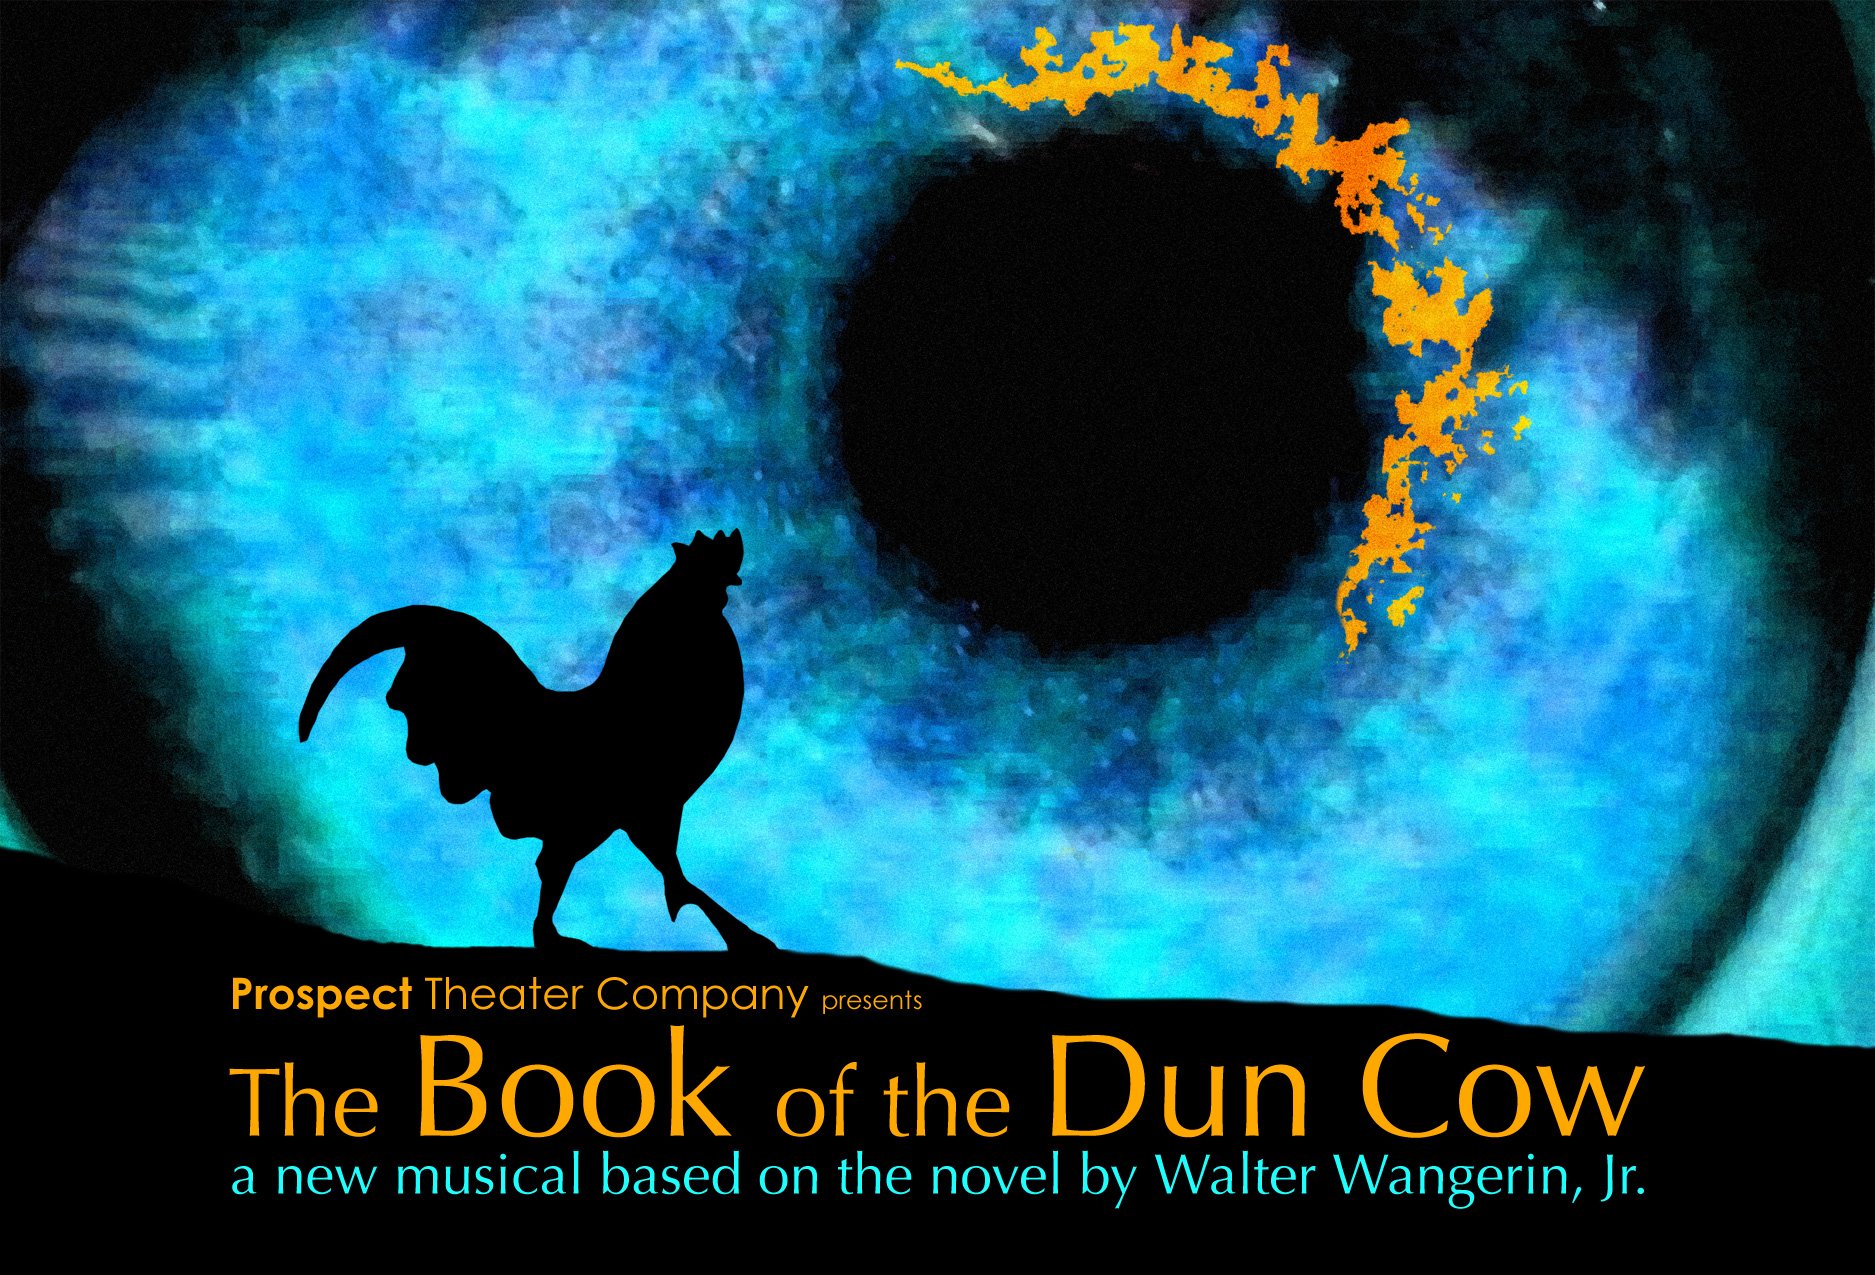 The Book of the Dun Cow (2006)